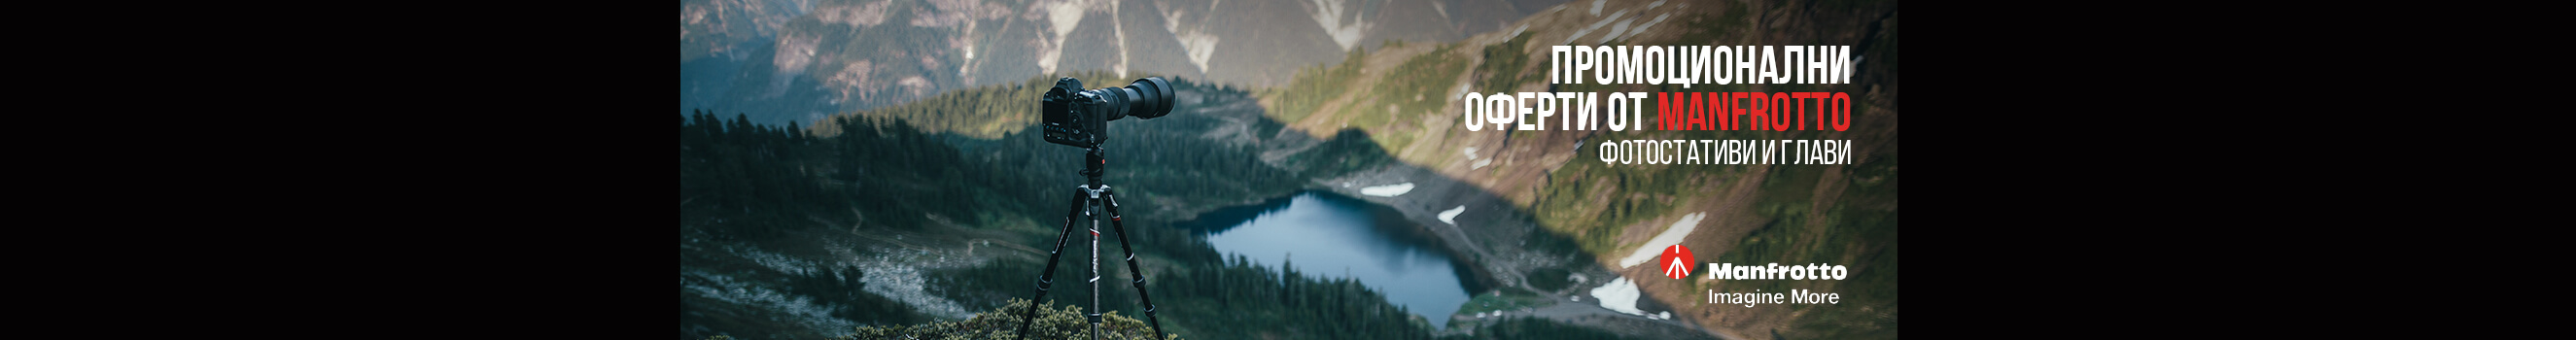 Promo Prices for Manfrotto tripods and heads in PhotoSynthesis stores